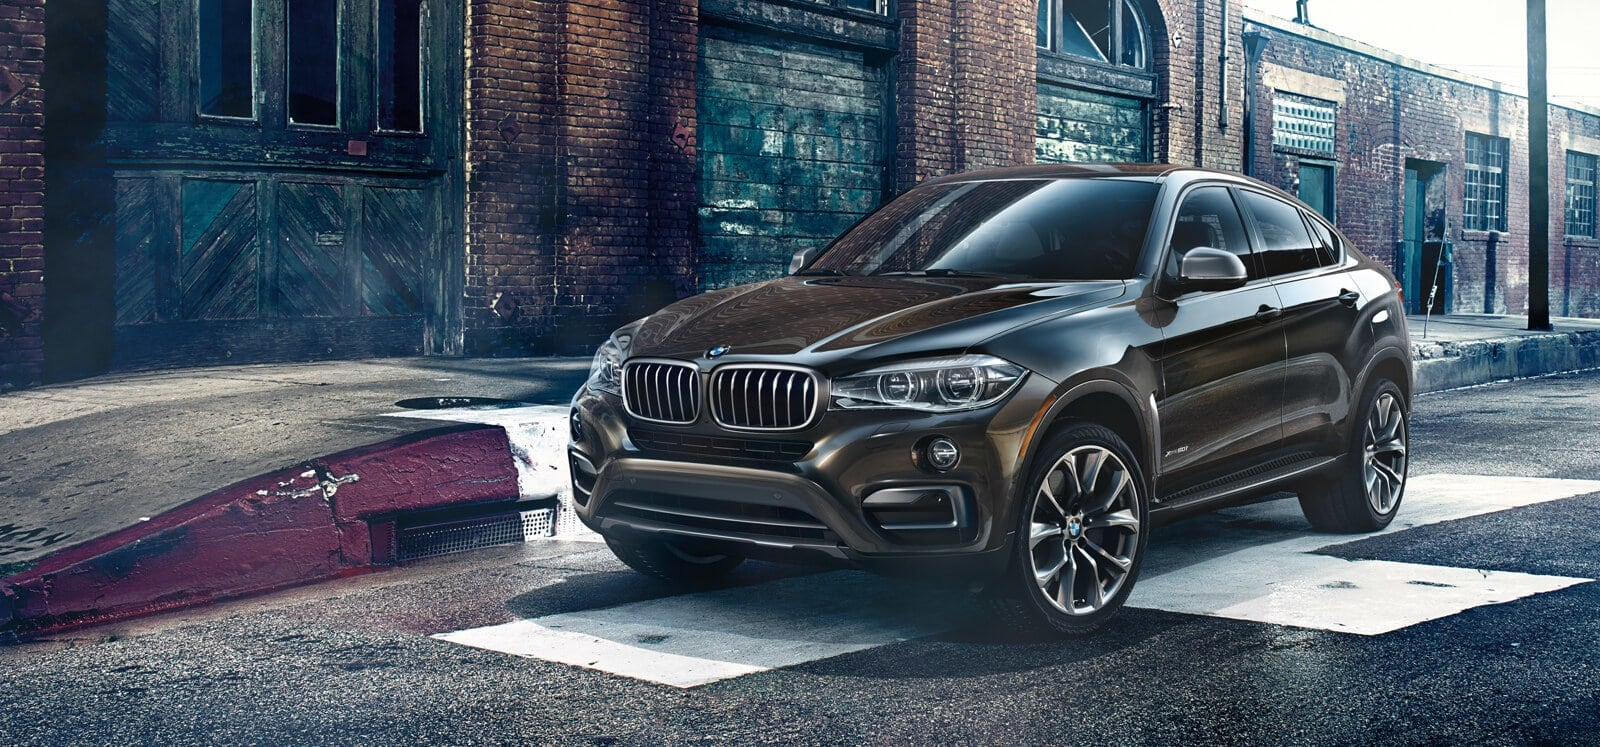 2018 Bmw X6 In Grapevine Tx Bmw Of Grapevine